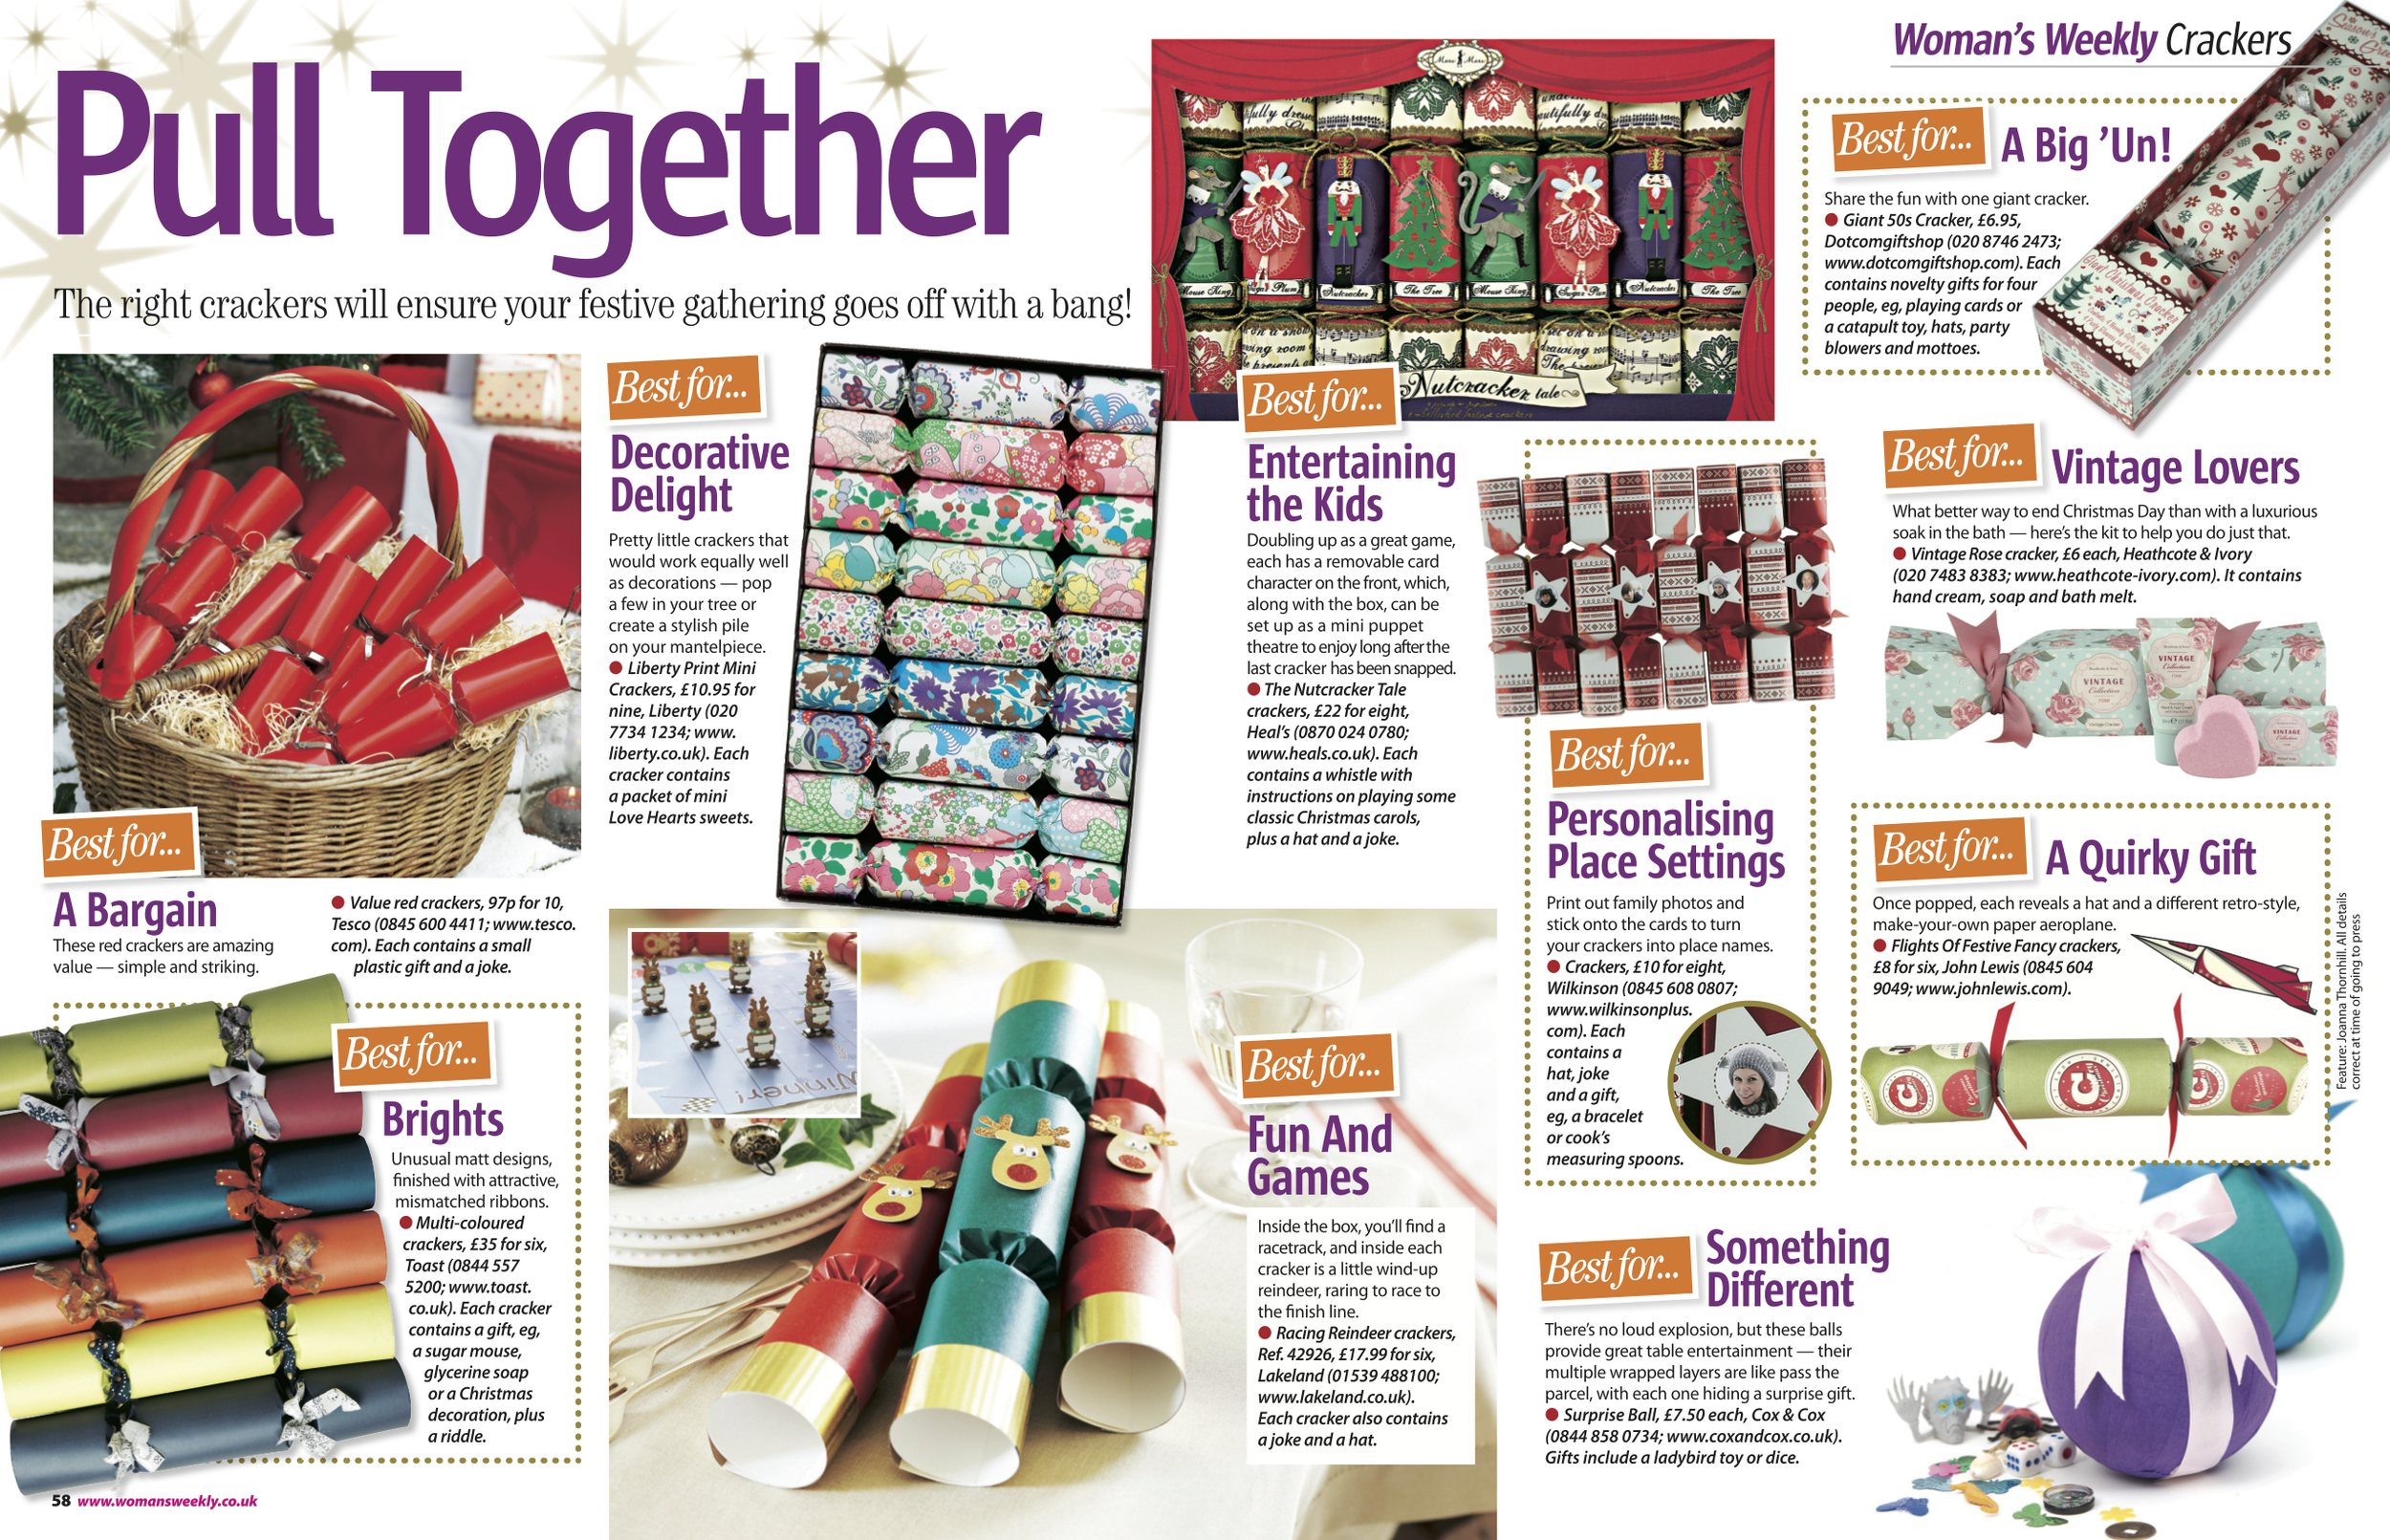 5. Woman's Weekly magazine Pull Together Christmas Crackers feature by Interior Stylist Joanna Thornhill.jpg